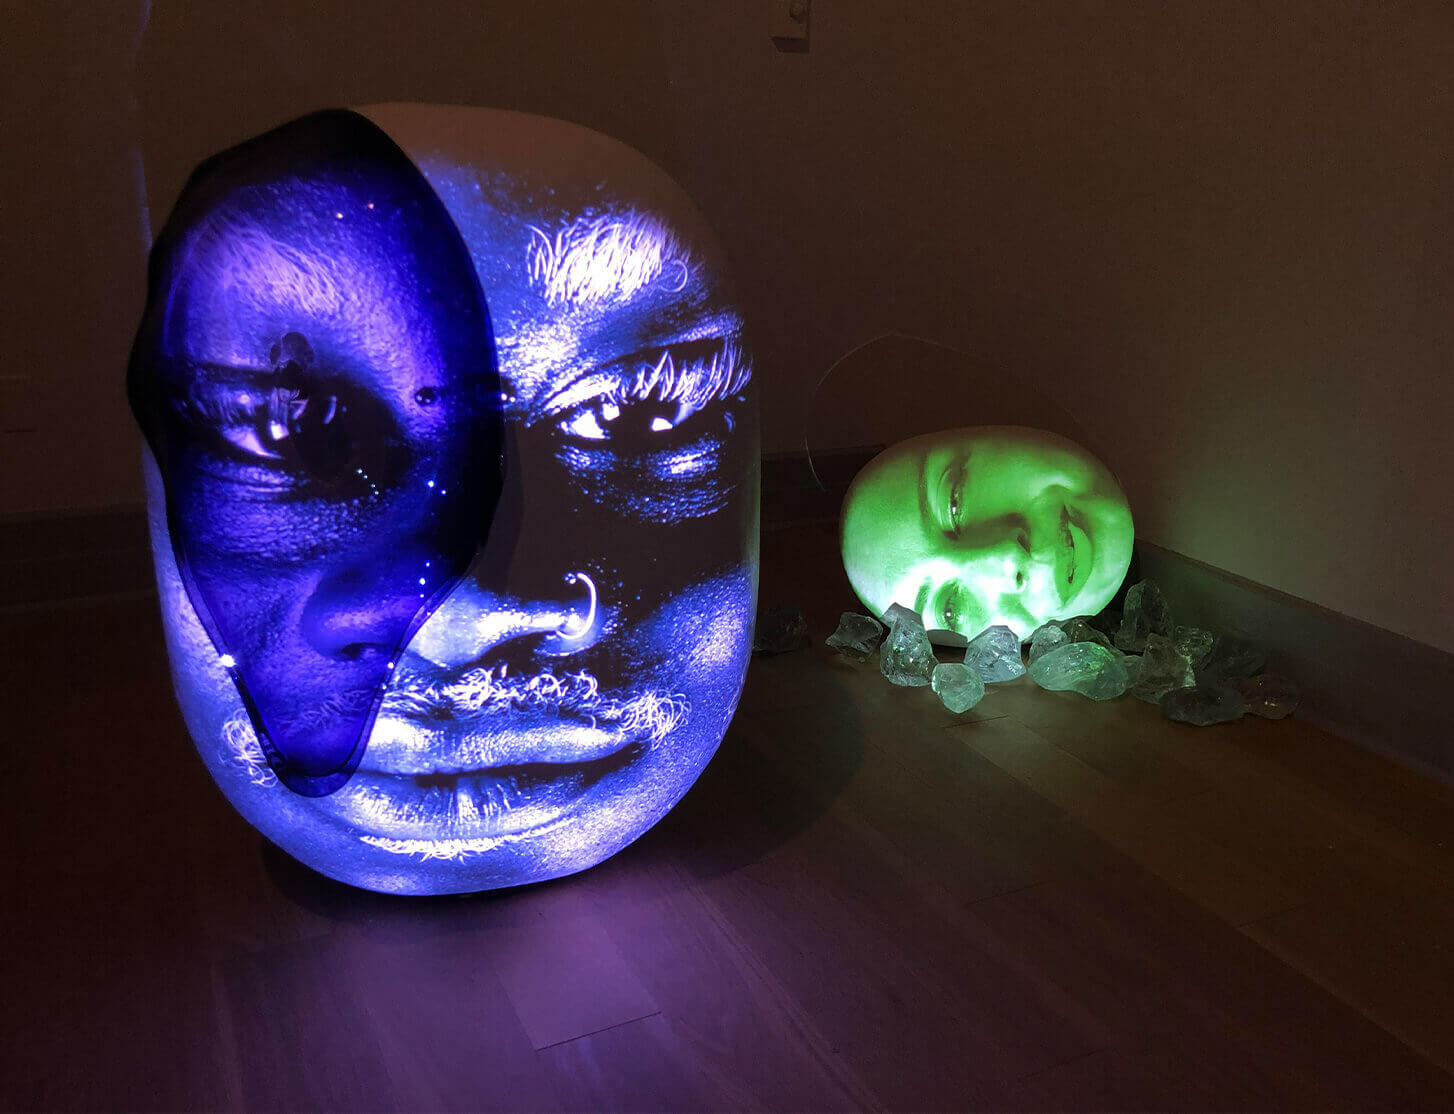 Tony Oursler 'Water Memory' at Guild Hall in East Hampton, NY